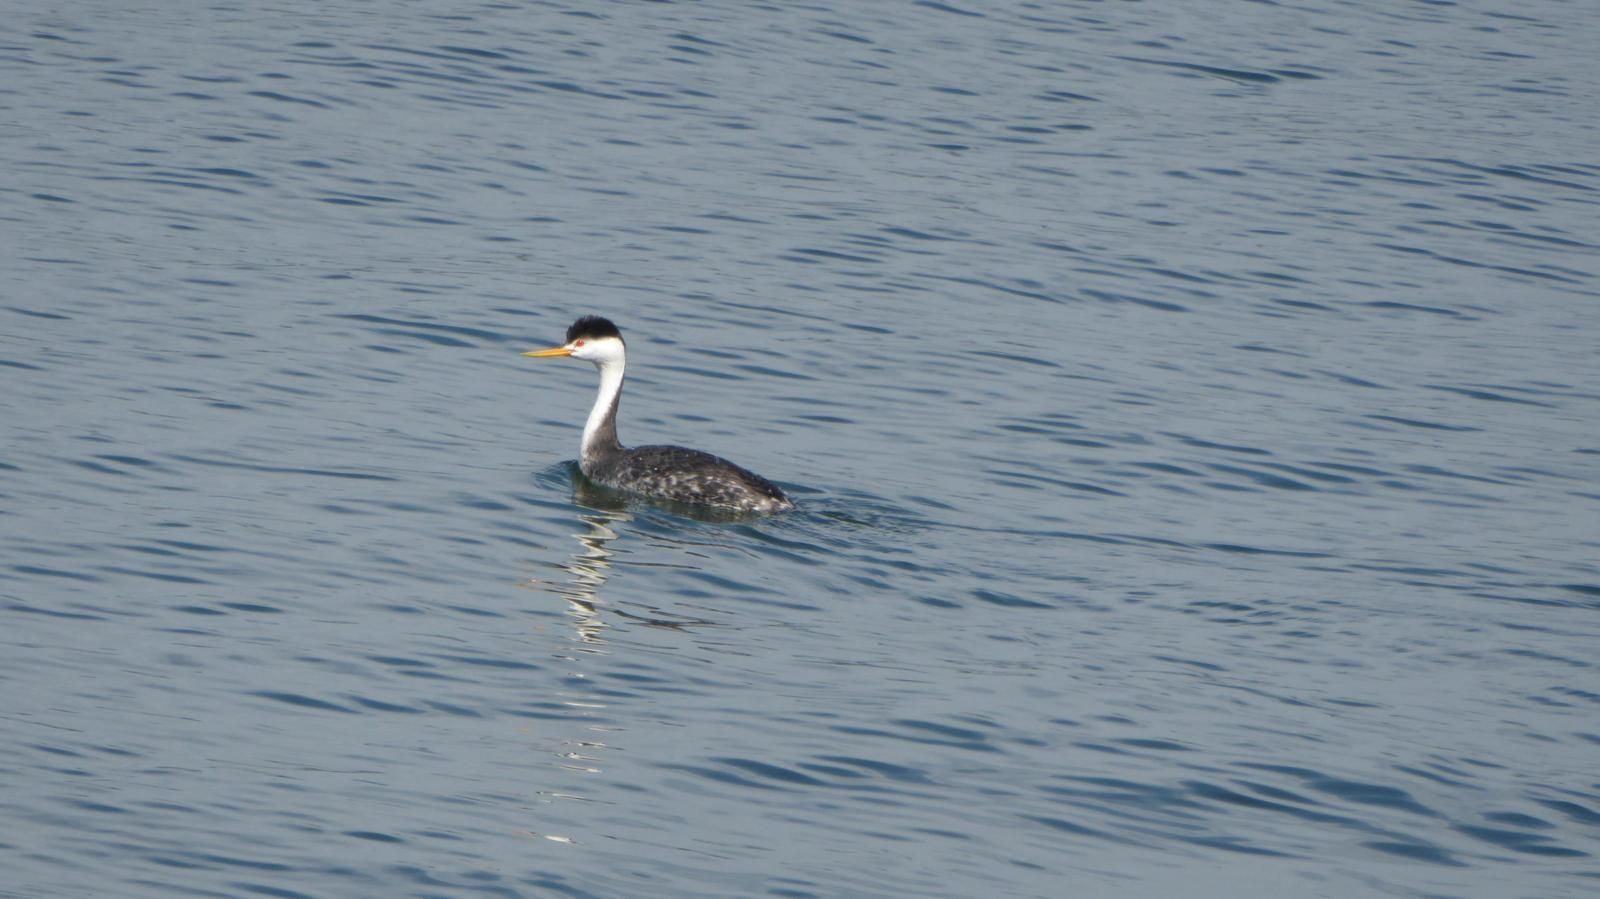 Clark's Grebe Photo by Daliel Leite